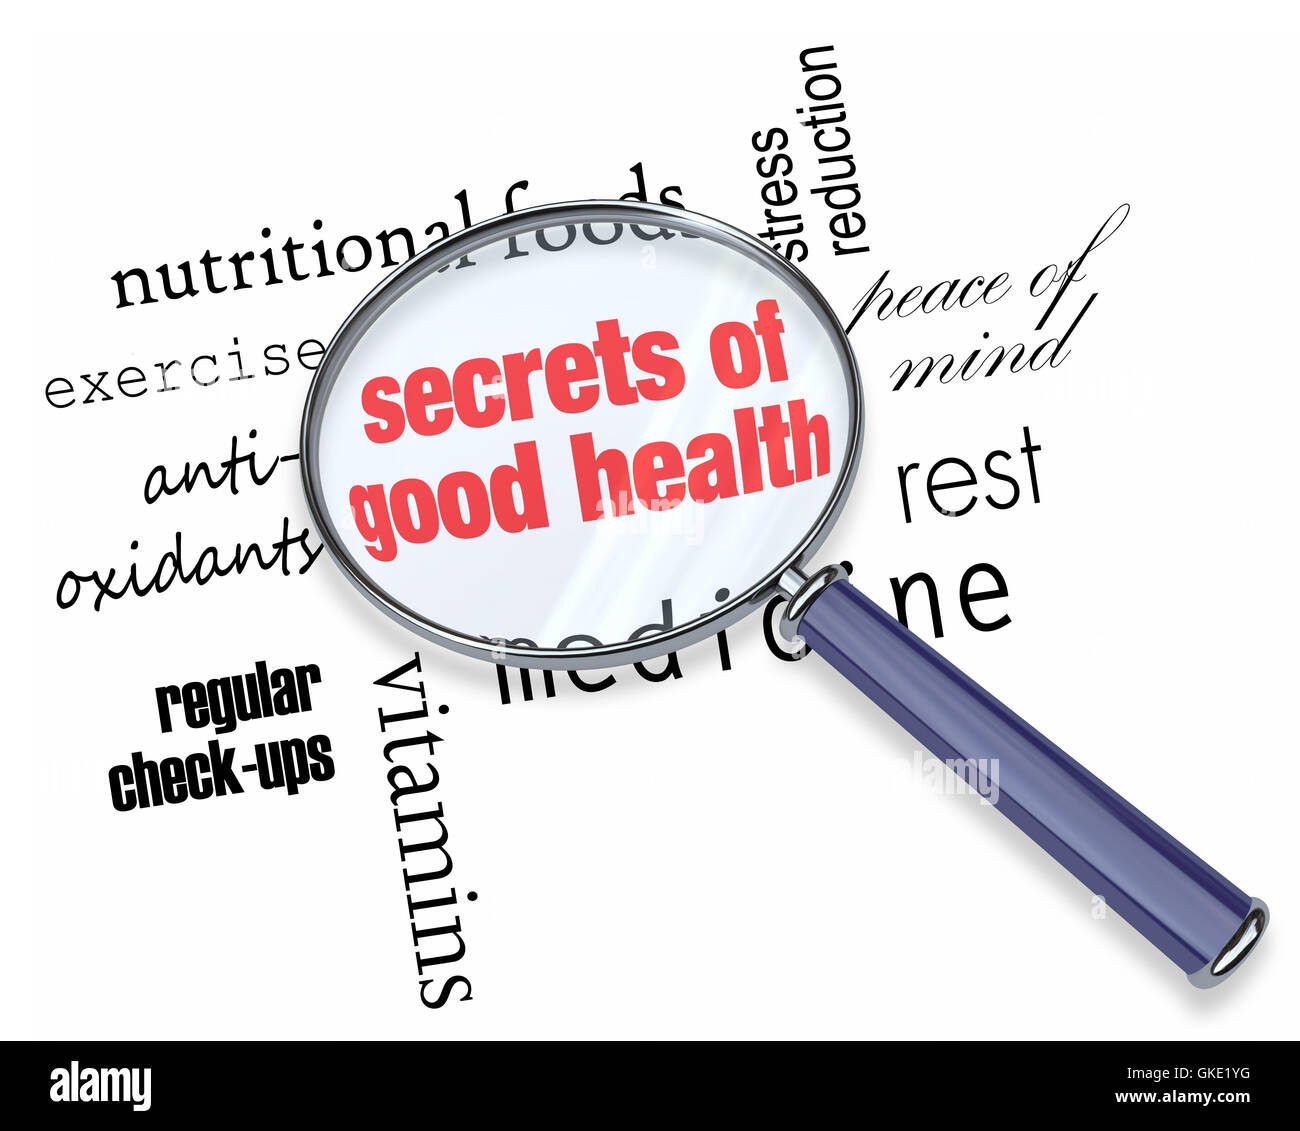 Searching for the Secrets of Good Health - Stock Image